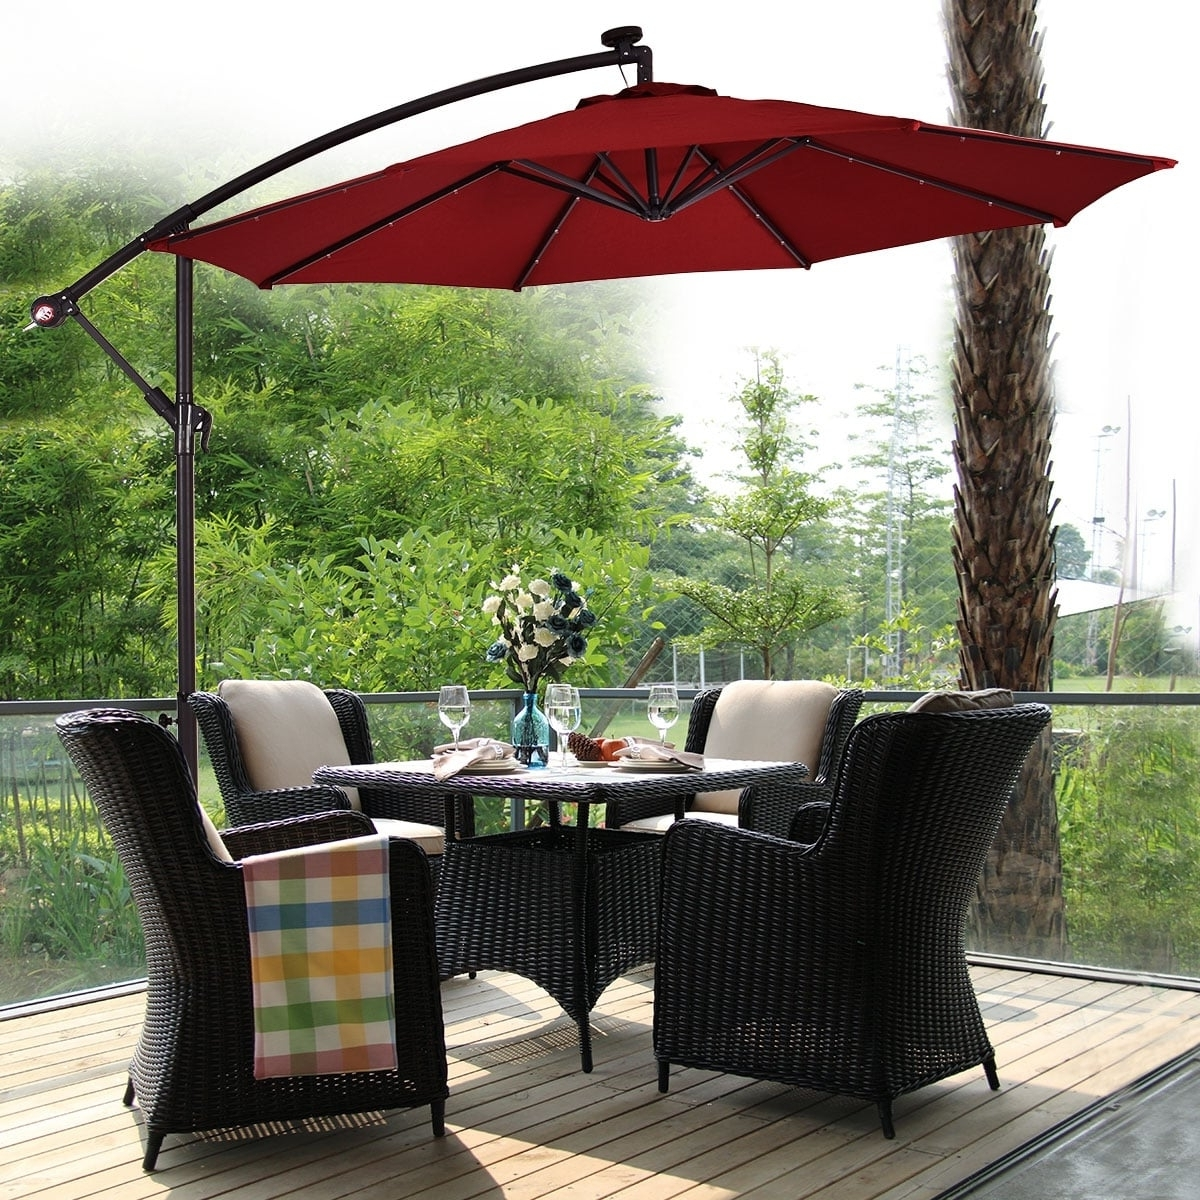 Our Best Patio For Well Known Extended Patio Umbrellas (View 16 of 20)